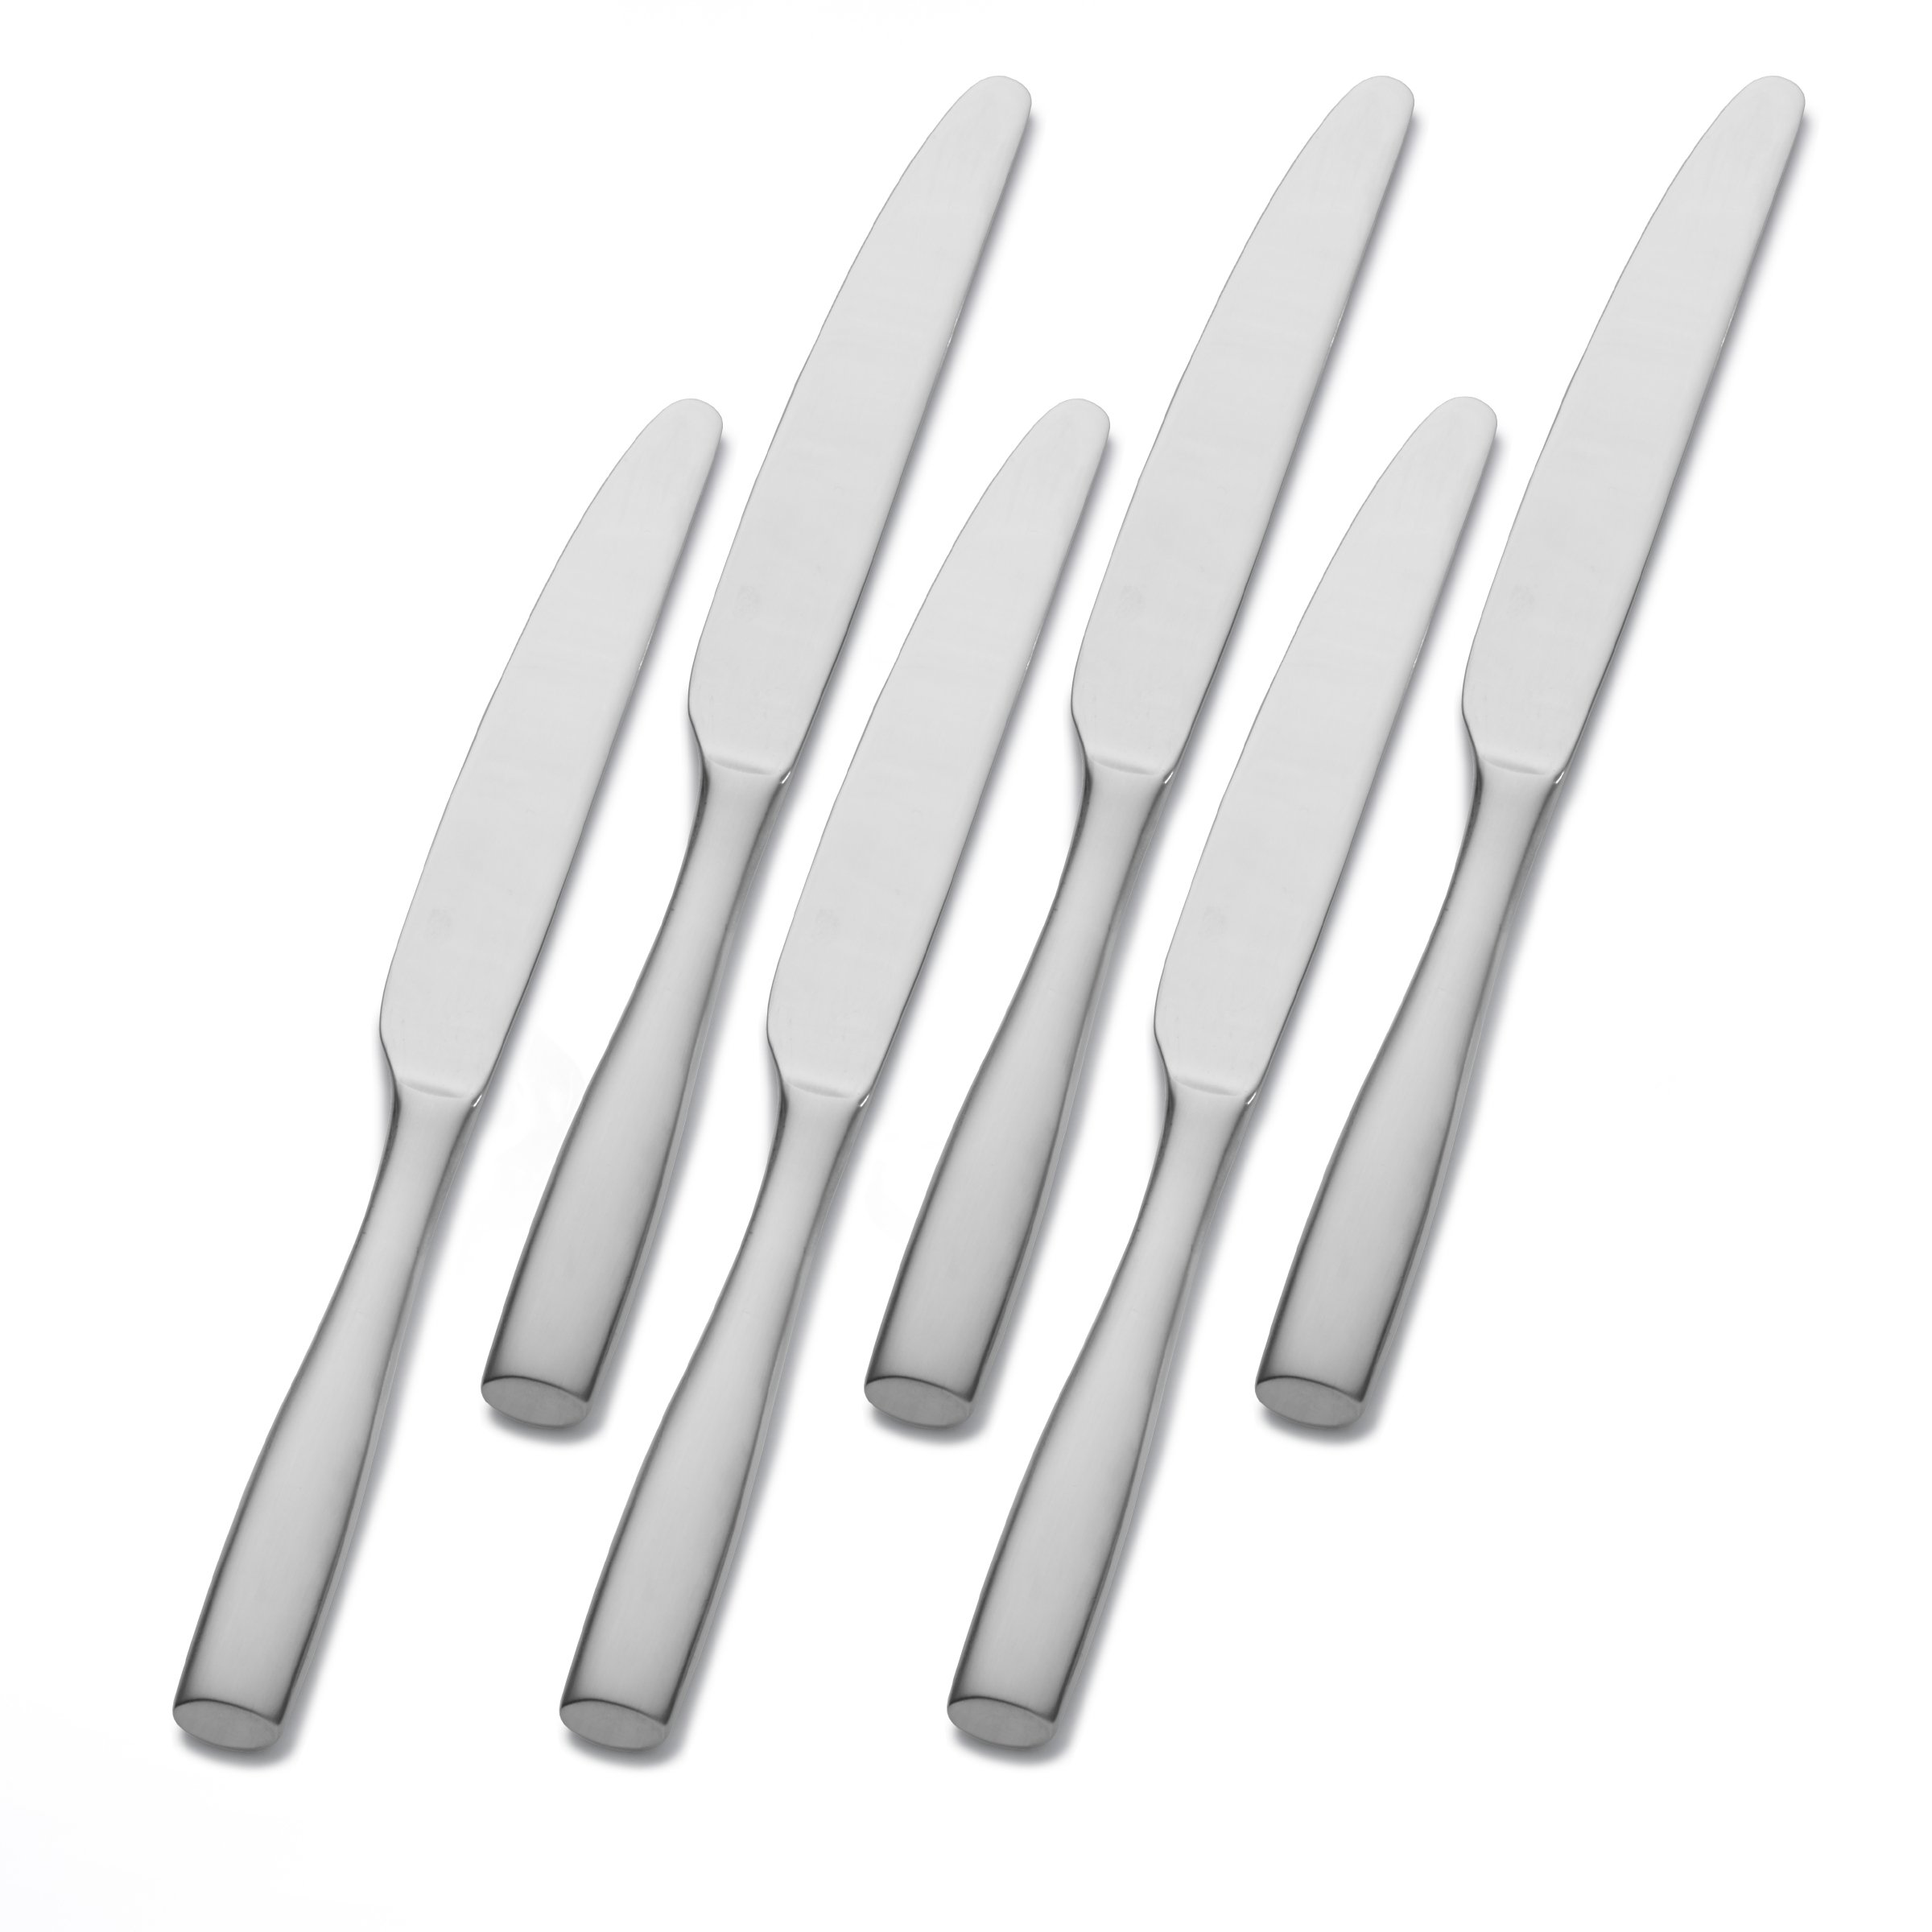 Mikasa Satin Loft Stainless Steel Dinner Knife, Set of 6